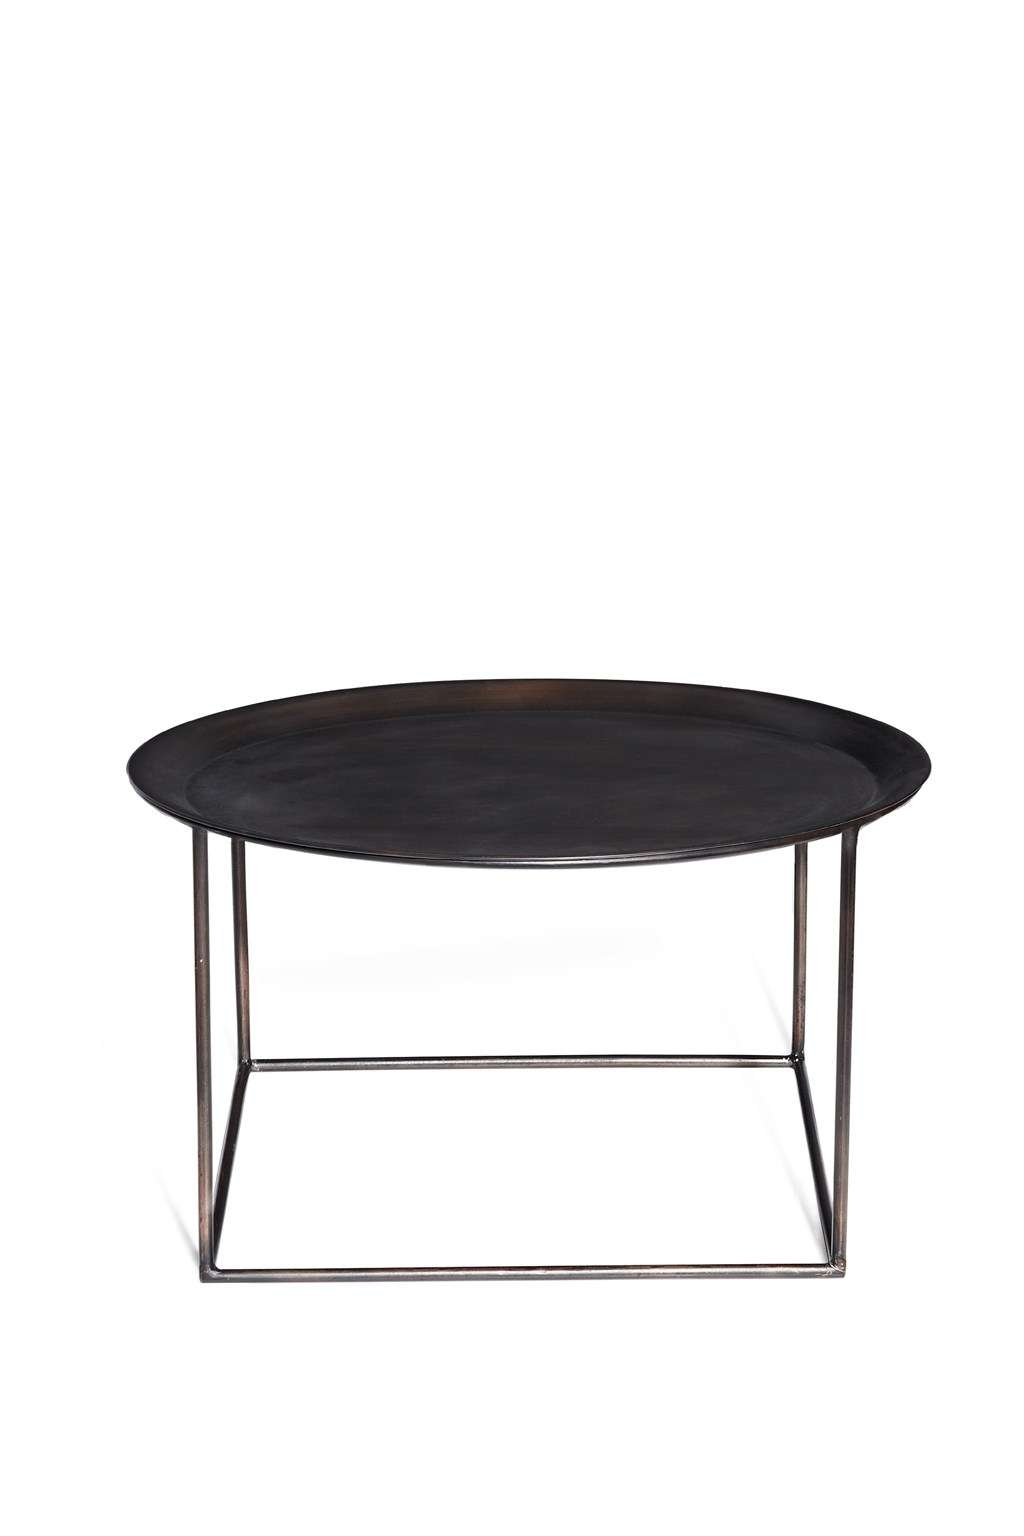 Preferred Round Steel Coffee Tables Intended For Coffee Table Small Square Coffee Table Round Steel Coffee Table (View 16 of 20)